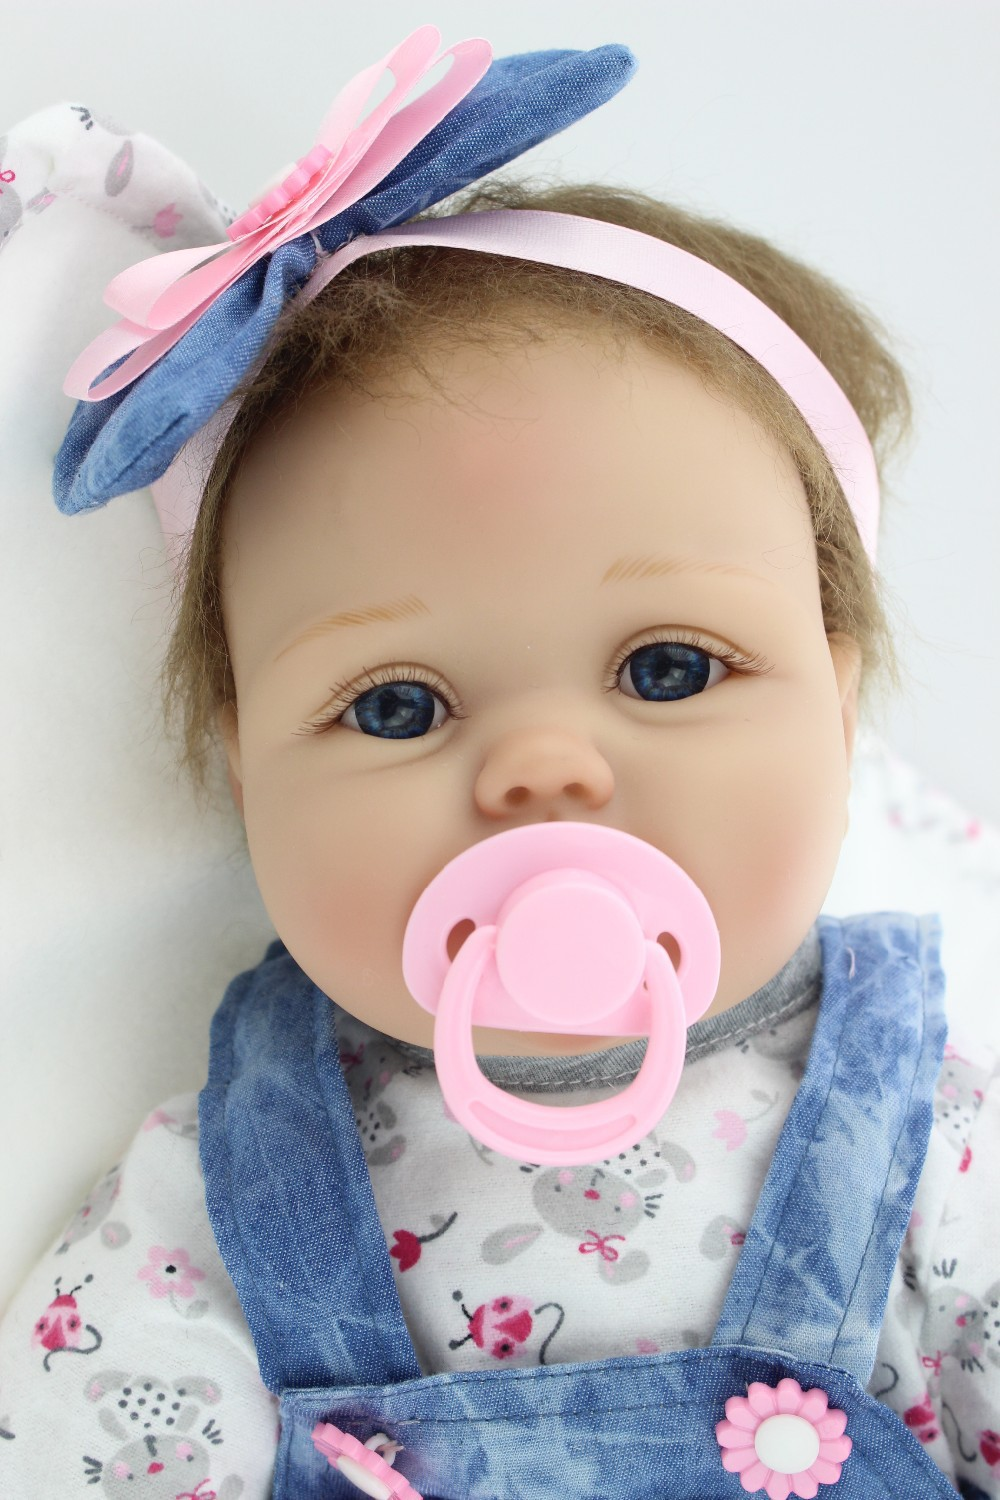 55cm Silicone Reborn Baby Doll Toys Lifelike Interactive Handmade Alive Baby Dolls Play House Girls Fashion Birthday Brinquedos крепление поворотное sp gadgets swivel arm mount для gopro 53060